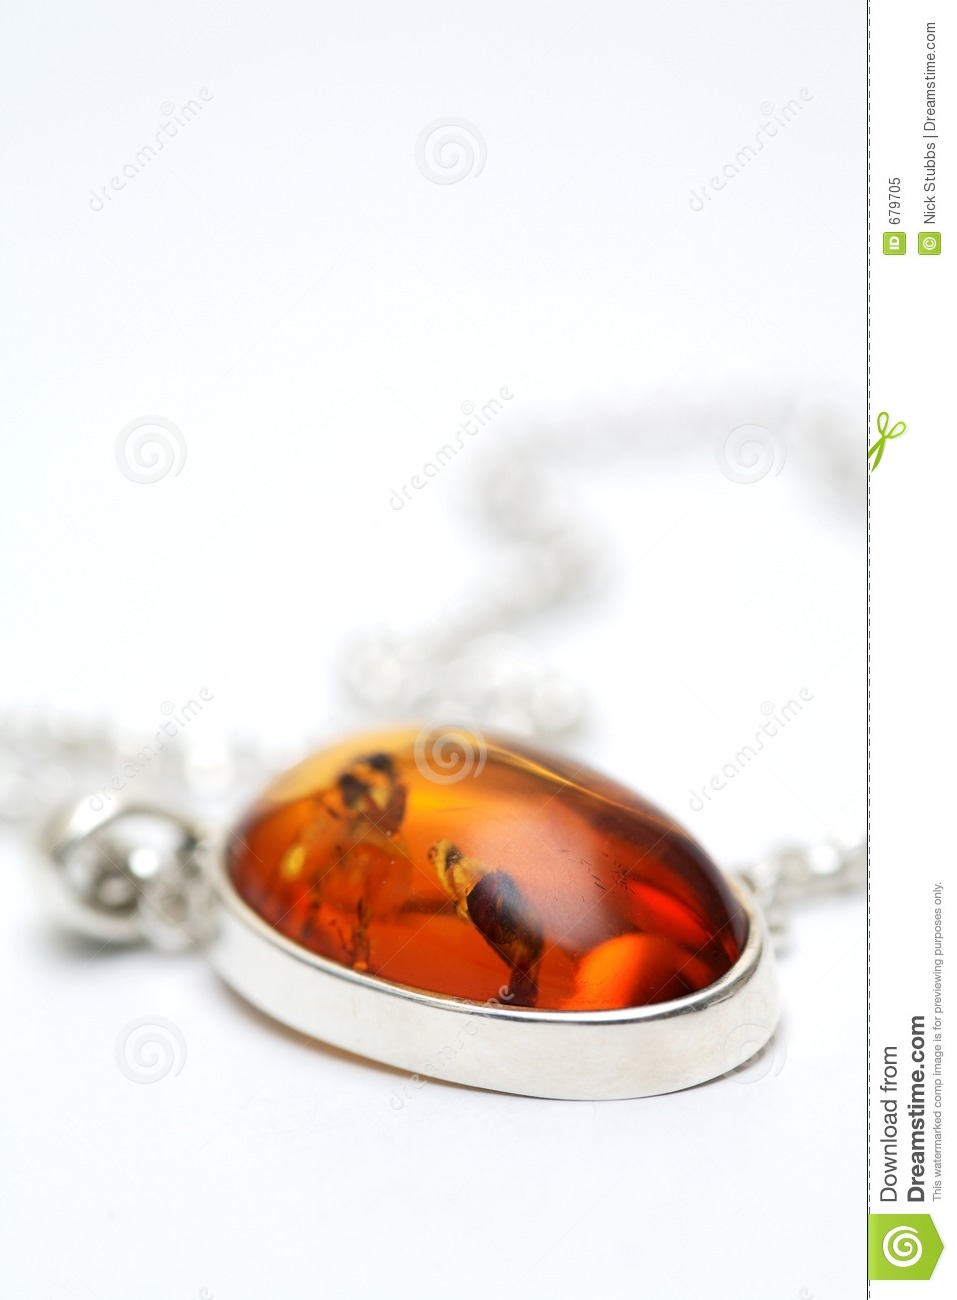 Silver necklace with Amber inlay